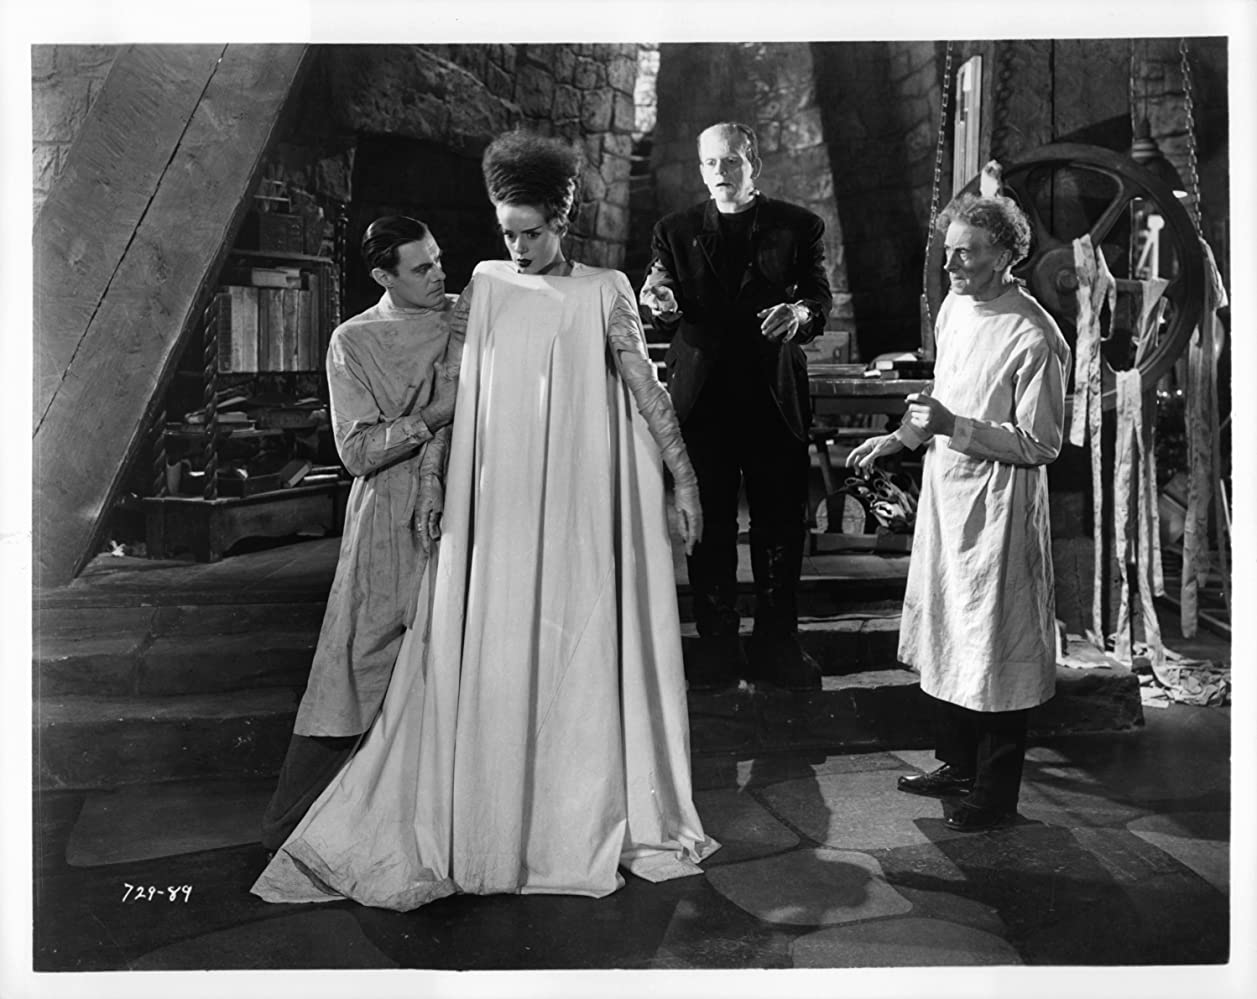 Boris Karloff, Elsa Lanchester, Colin Clive, and Ernest Thesiger in Bride of Frankenstein (1935)